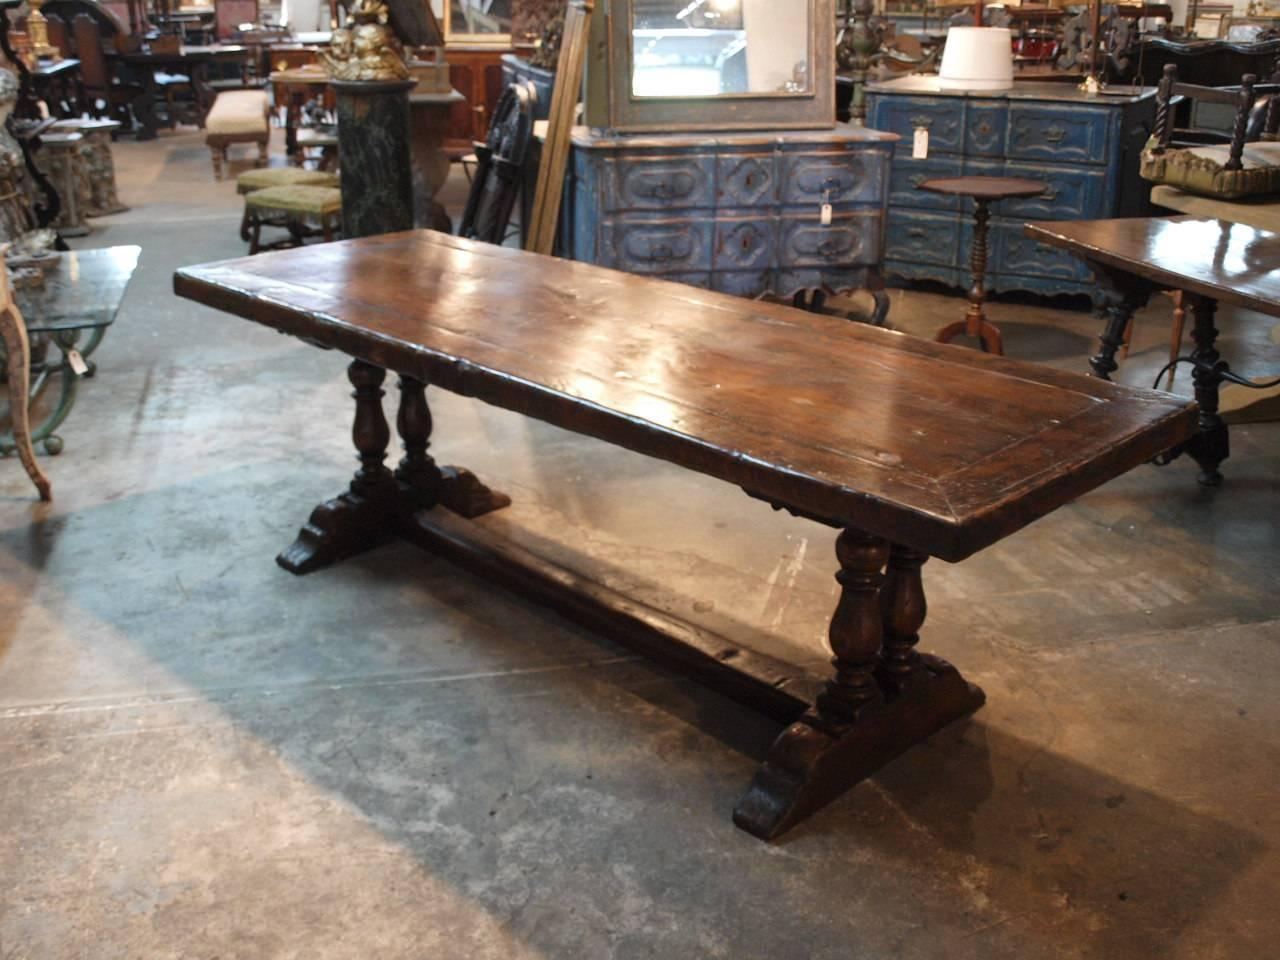 French 19th Century Baluster Leg Farm Table, Trestle Table For Sale at 1stdibs